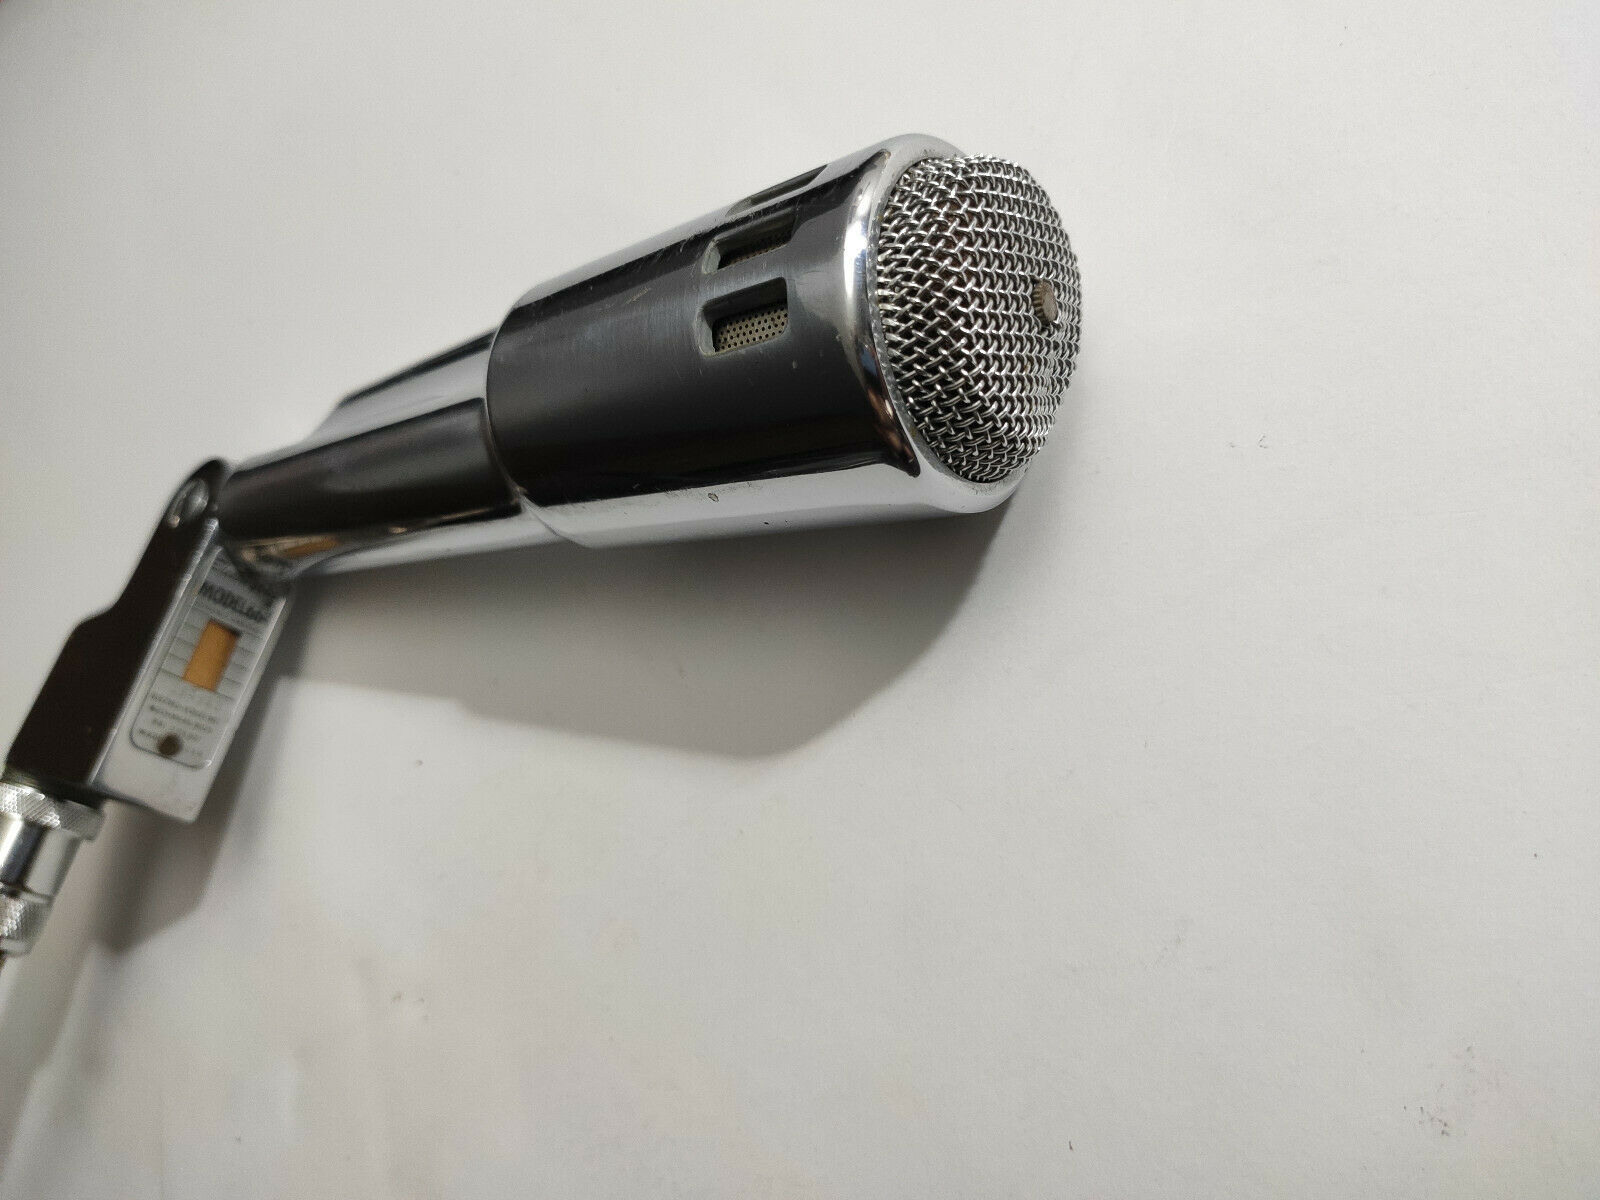 Vintage 1950's Electro Voice 664 dynamic cardioid microphone - MIC Electro-Voice